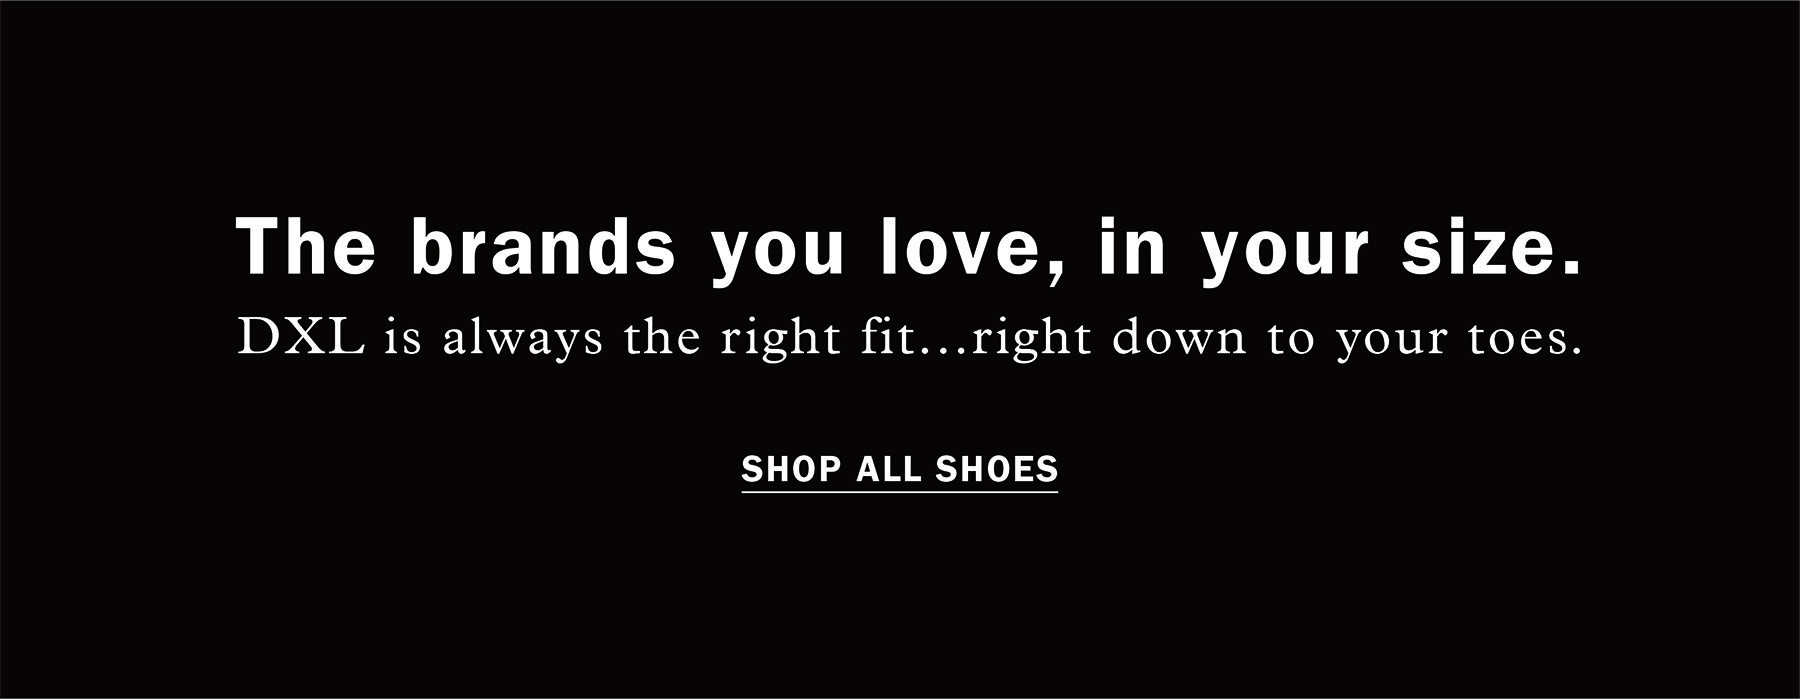 THE BRANDS YOU LOVE, IN YOUR SIZE. DXL is always the right fit...right down to your toes. SHOP ALL SHOES